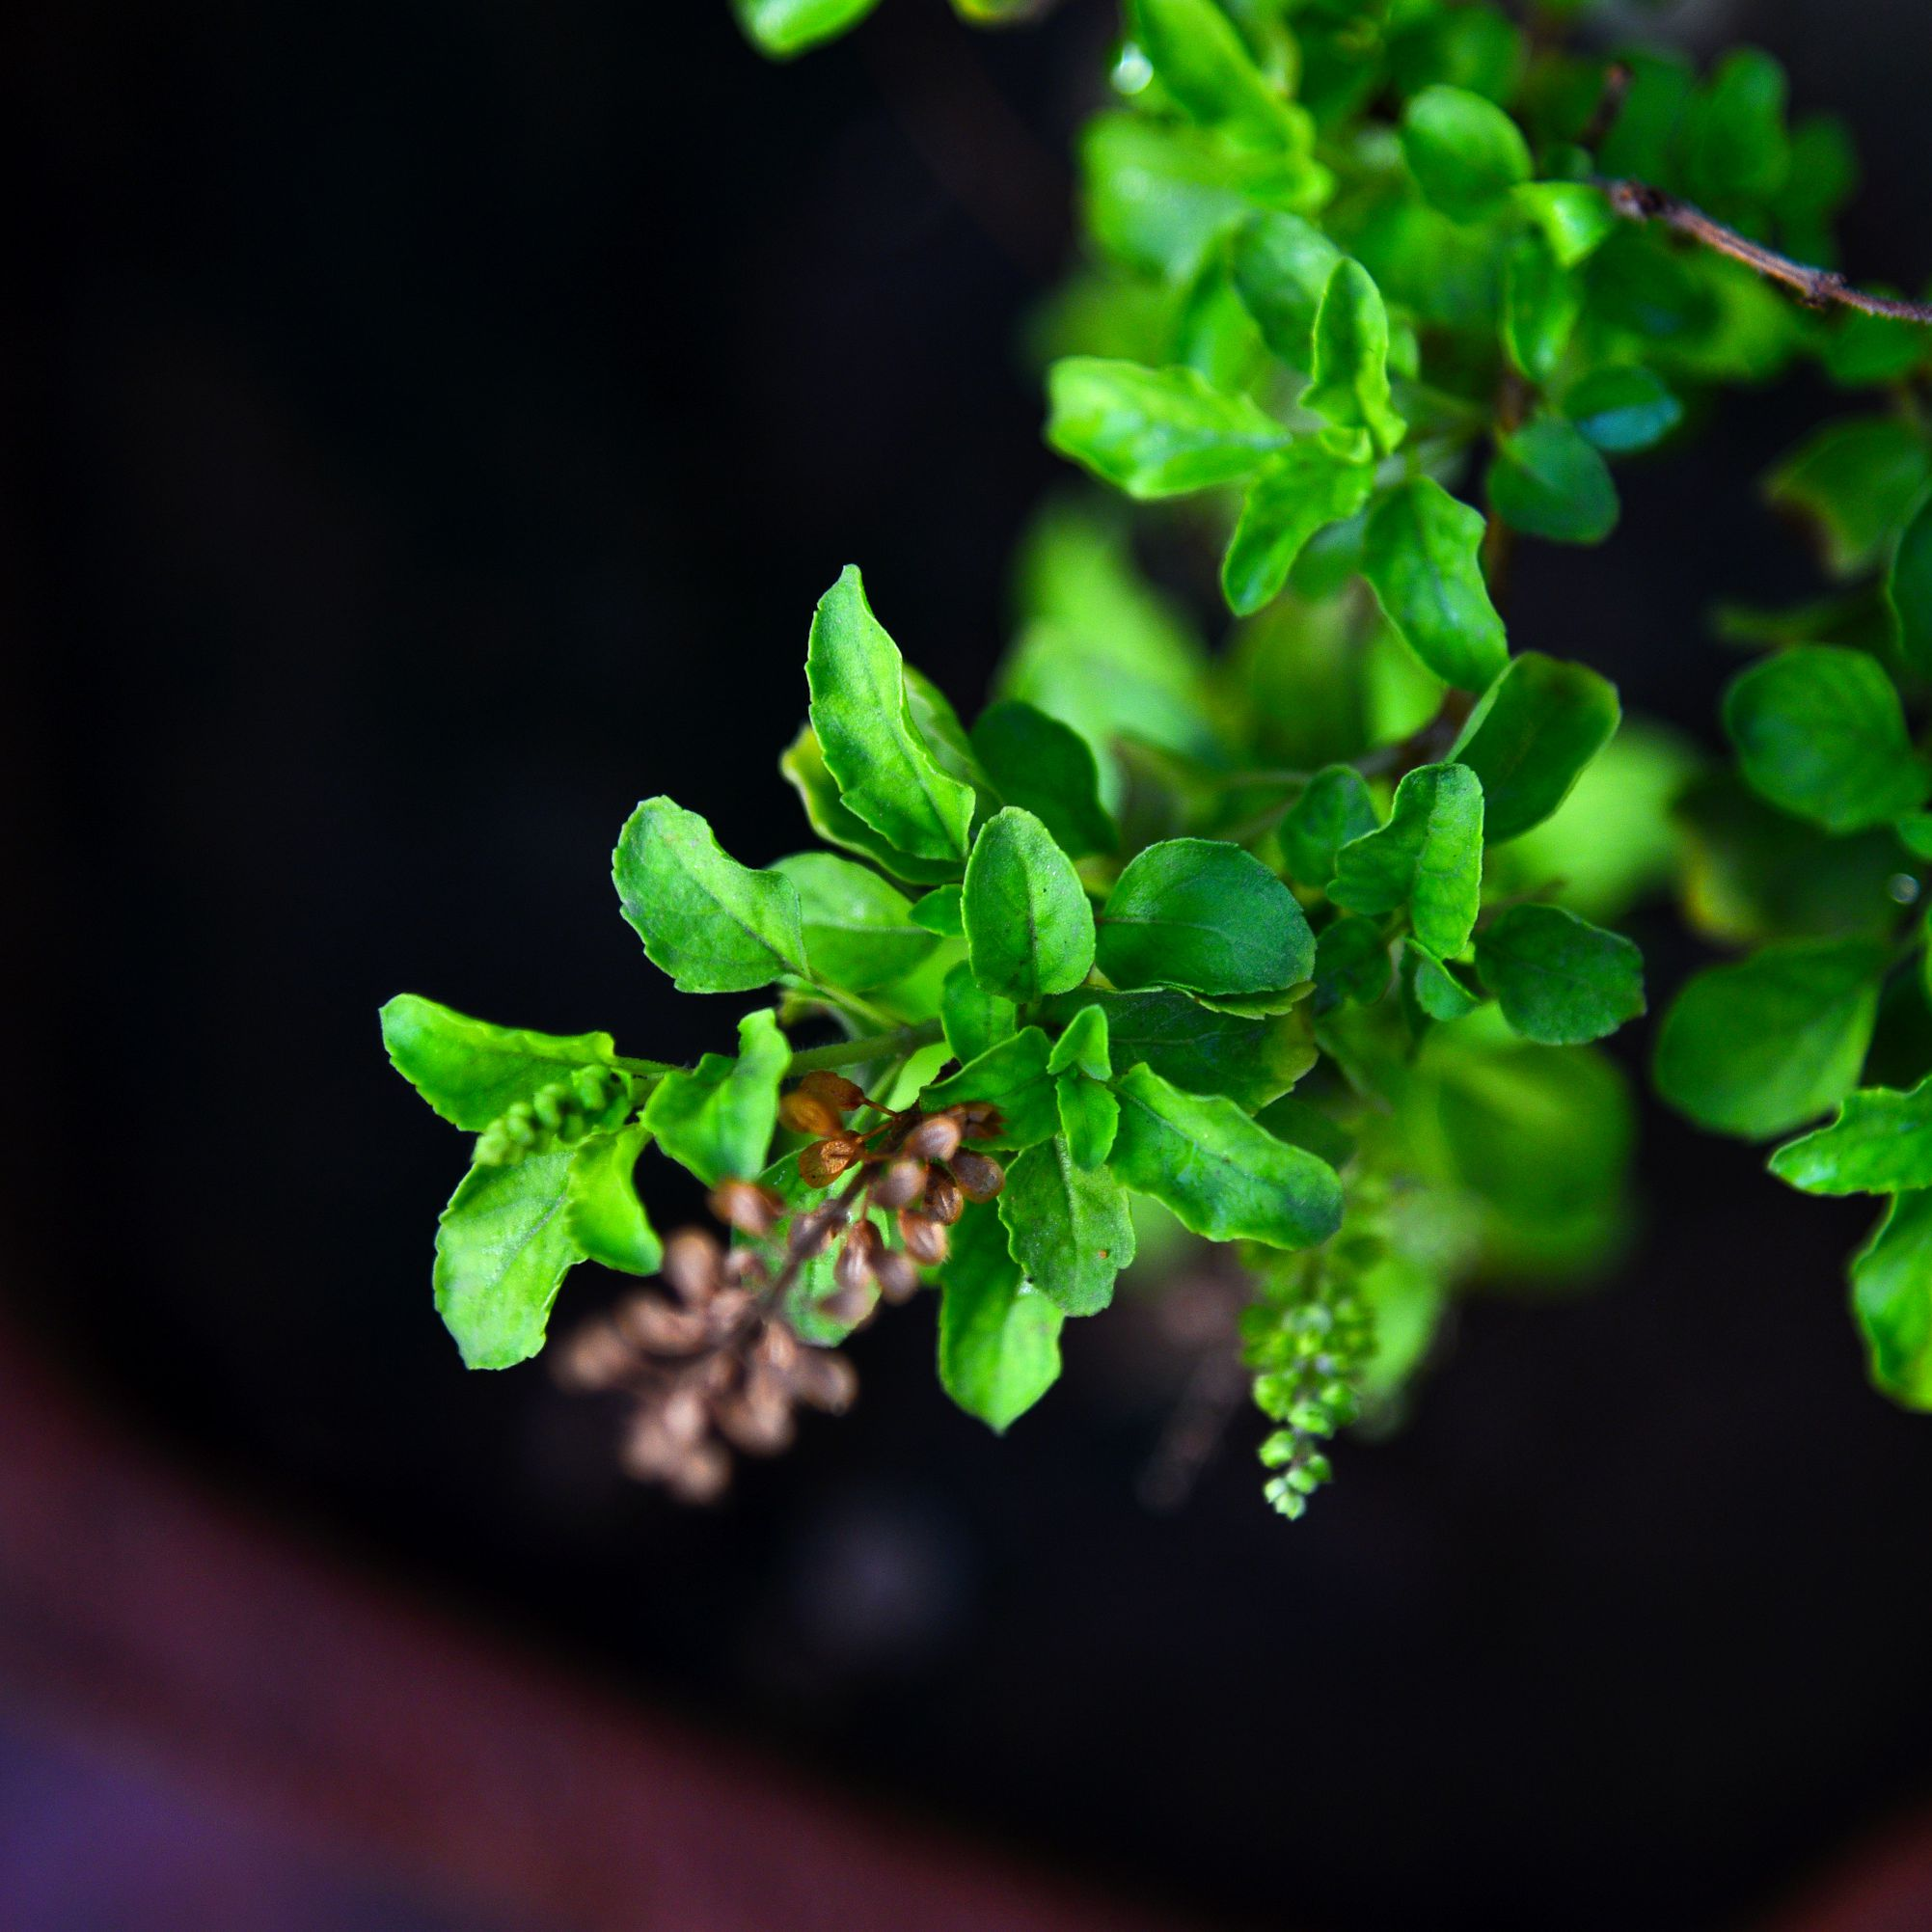 The Health Benefits of Holy Basil